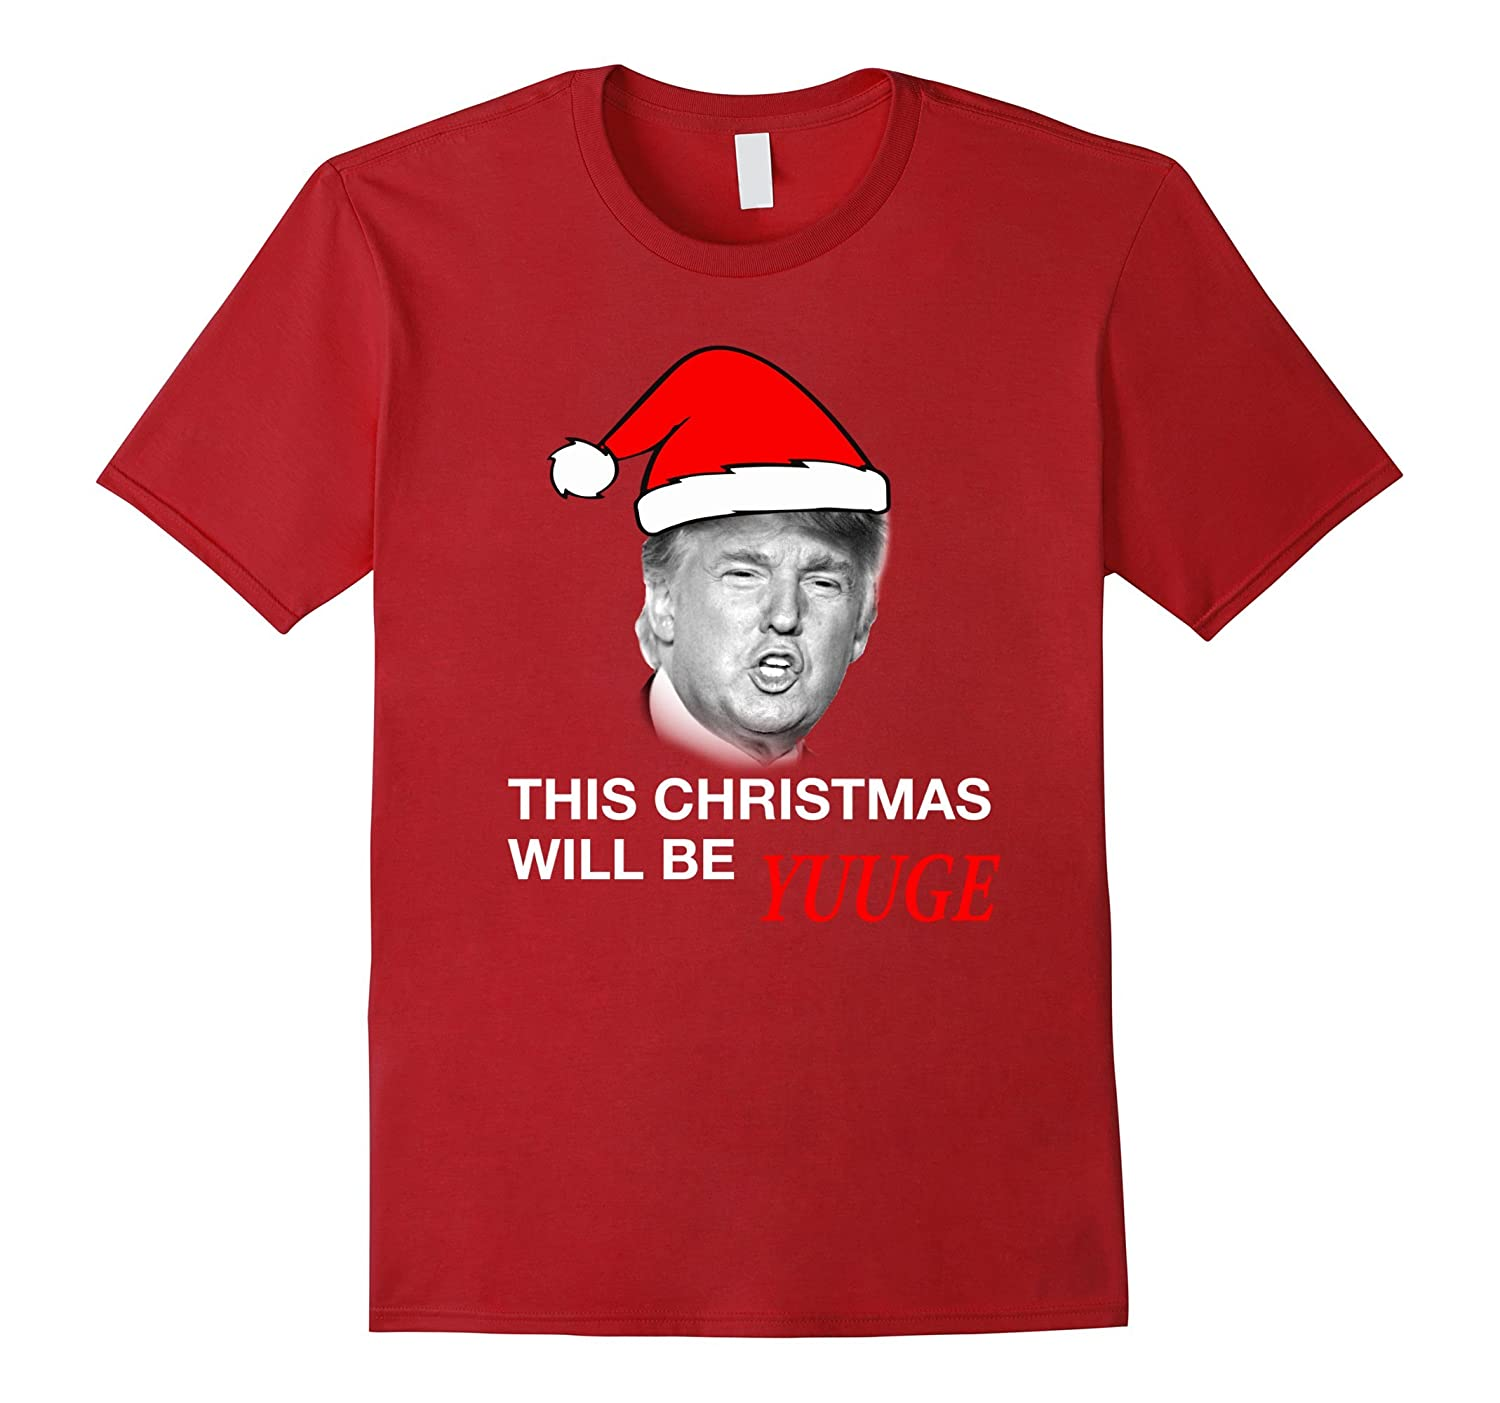 Christmas Trump Shirt.This Christmas Will Be Uge Tee Best Trump Shirt This Year Td